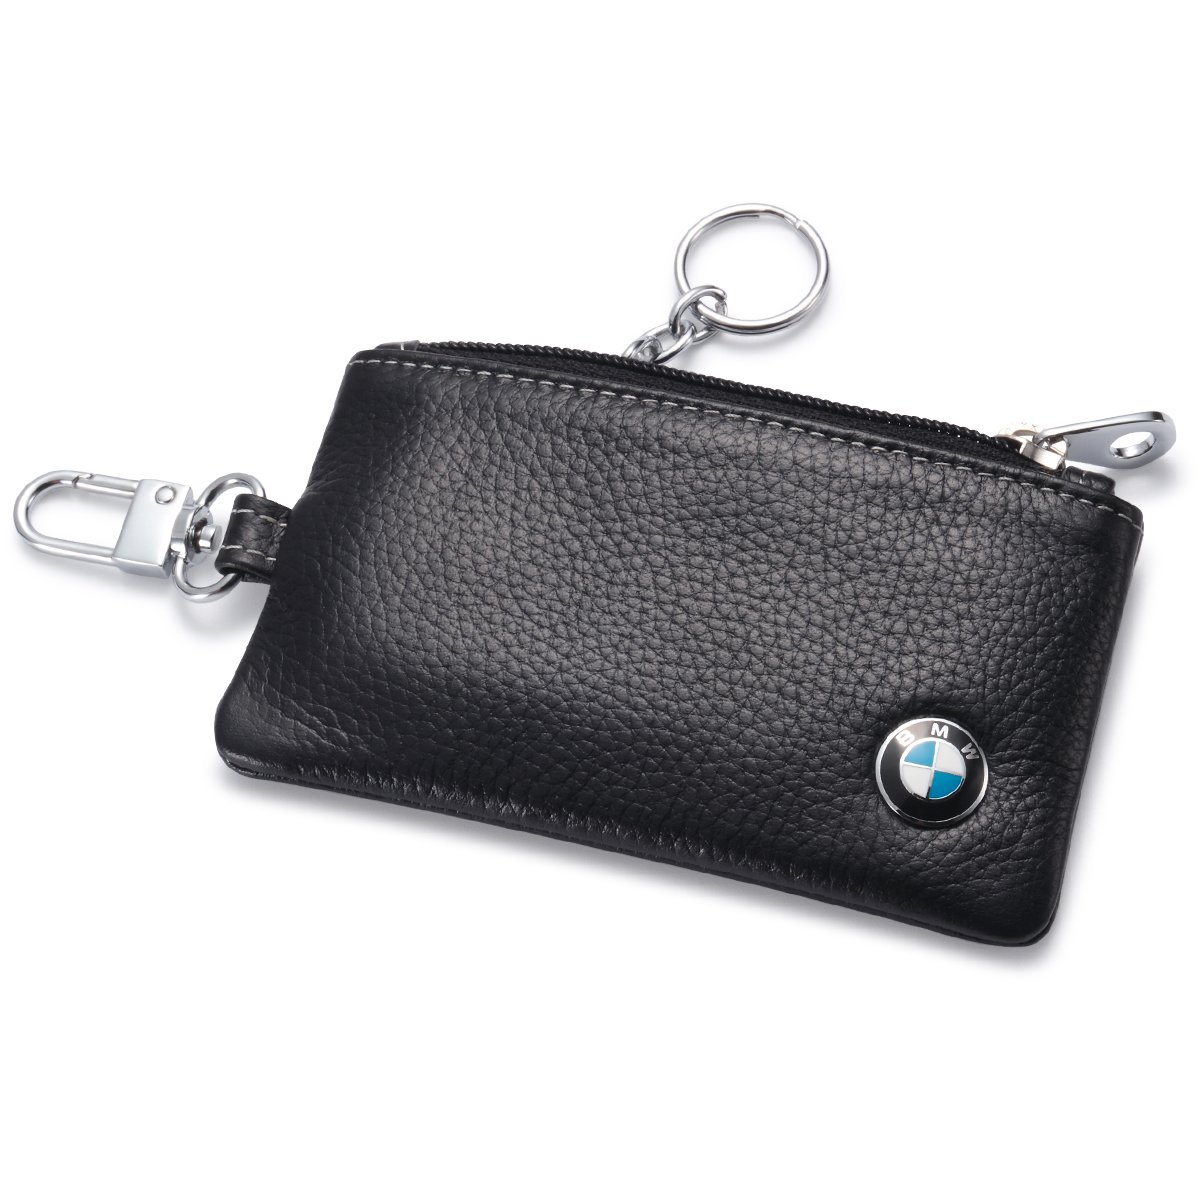 BMW Car Key Holder Remote Cover Fob with 1 Metal Keychain - Genuine Leather